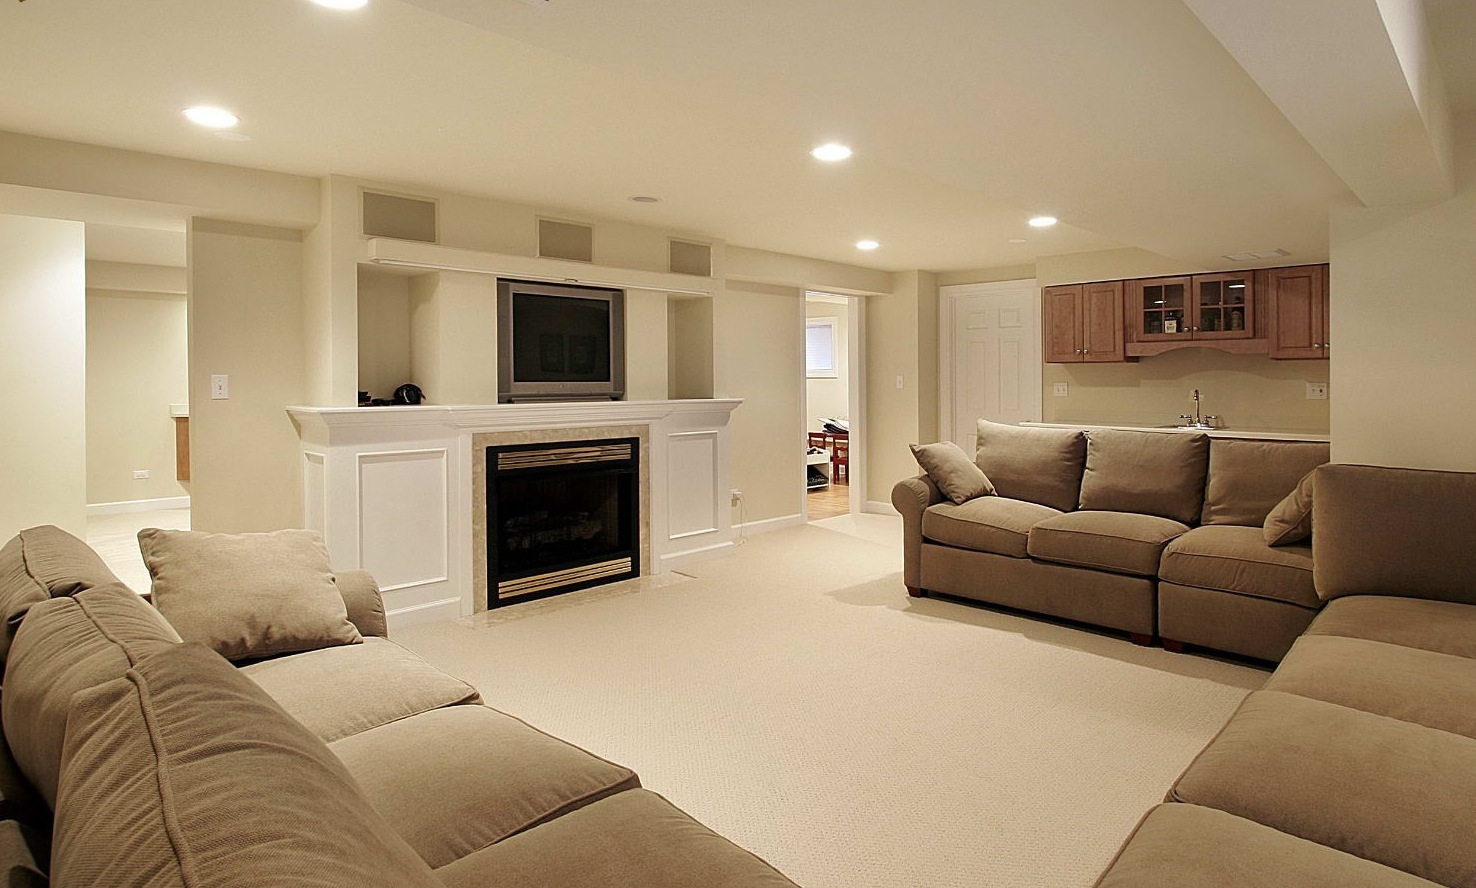 30 basement remodeling ideas inspiration - Living Room Remodel